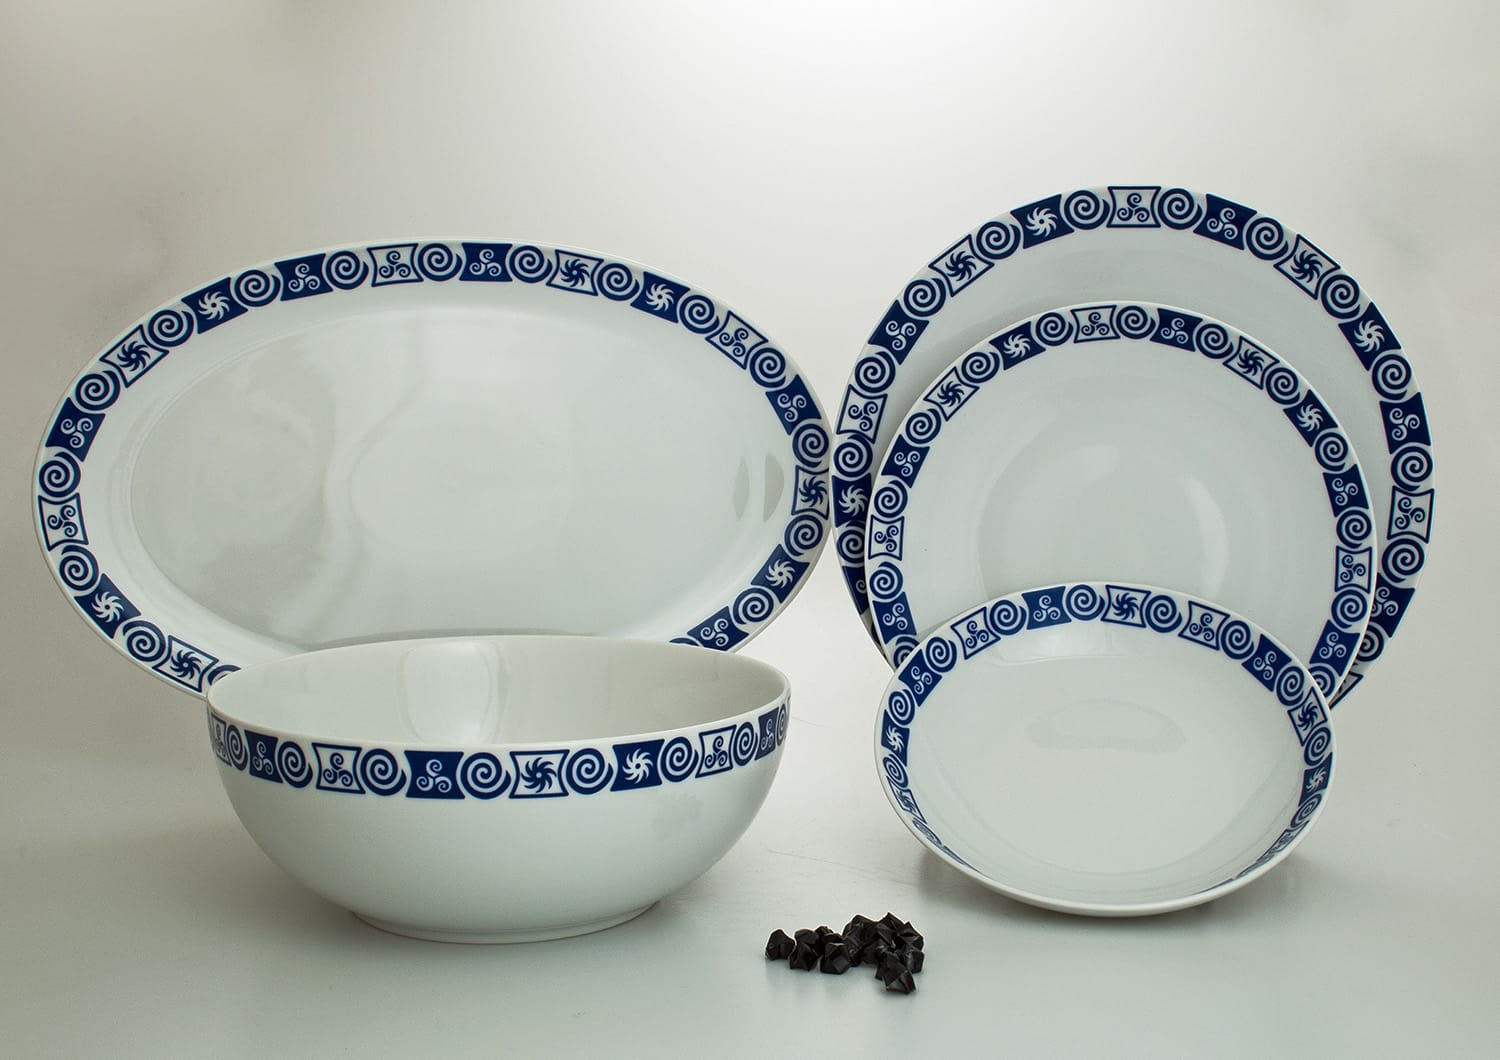 20-piece dinnerware set. Coupe design, Celta collection.